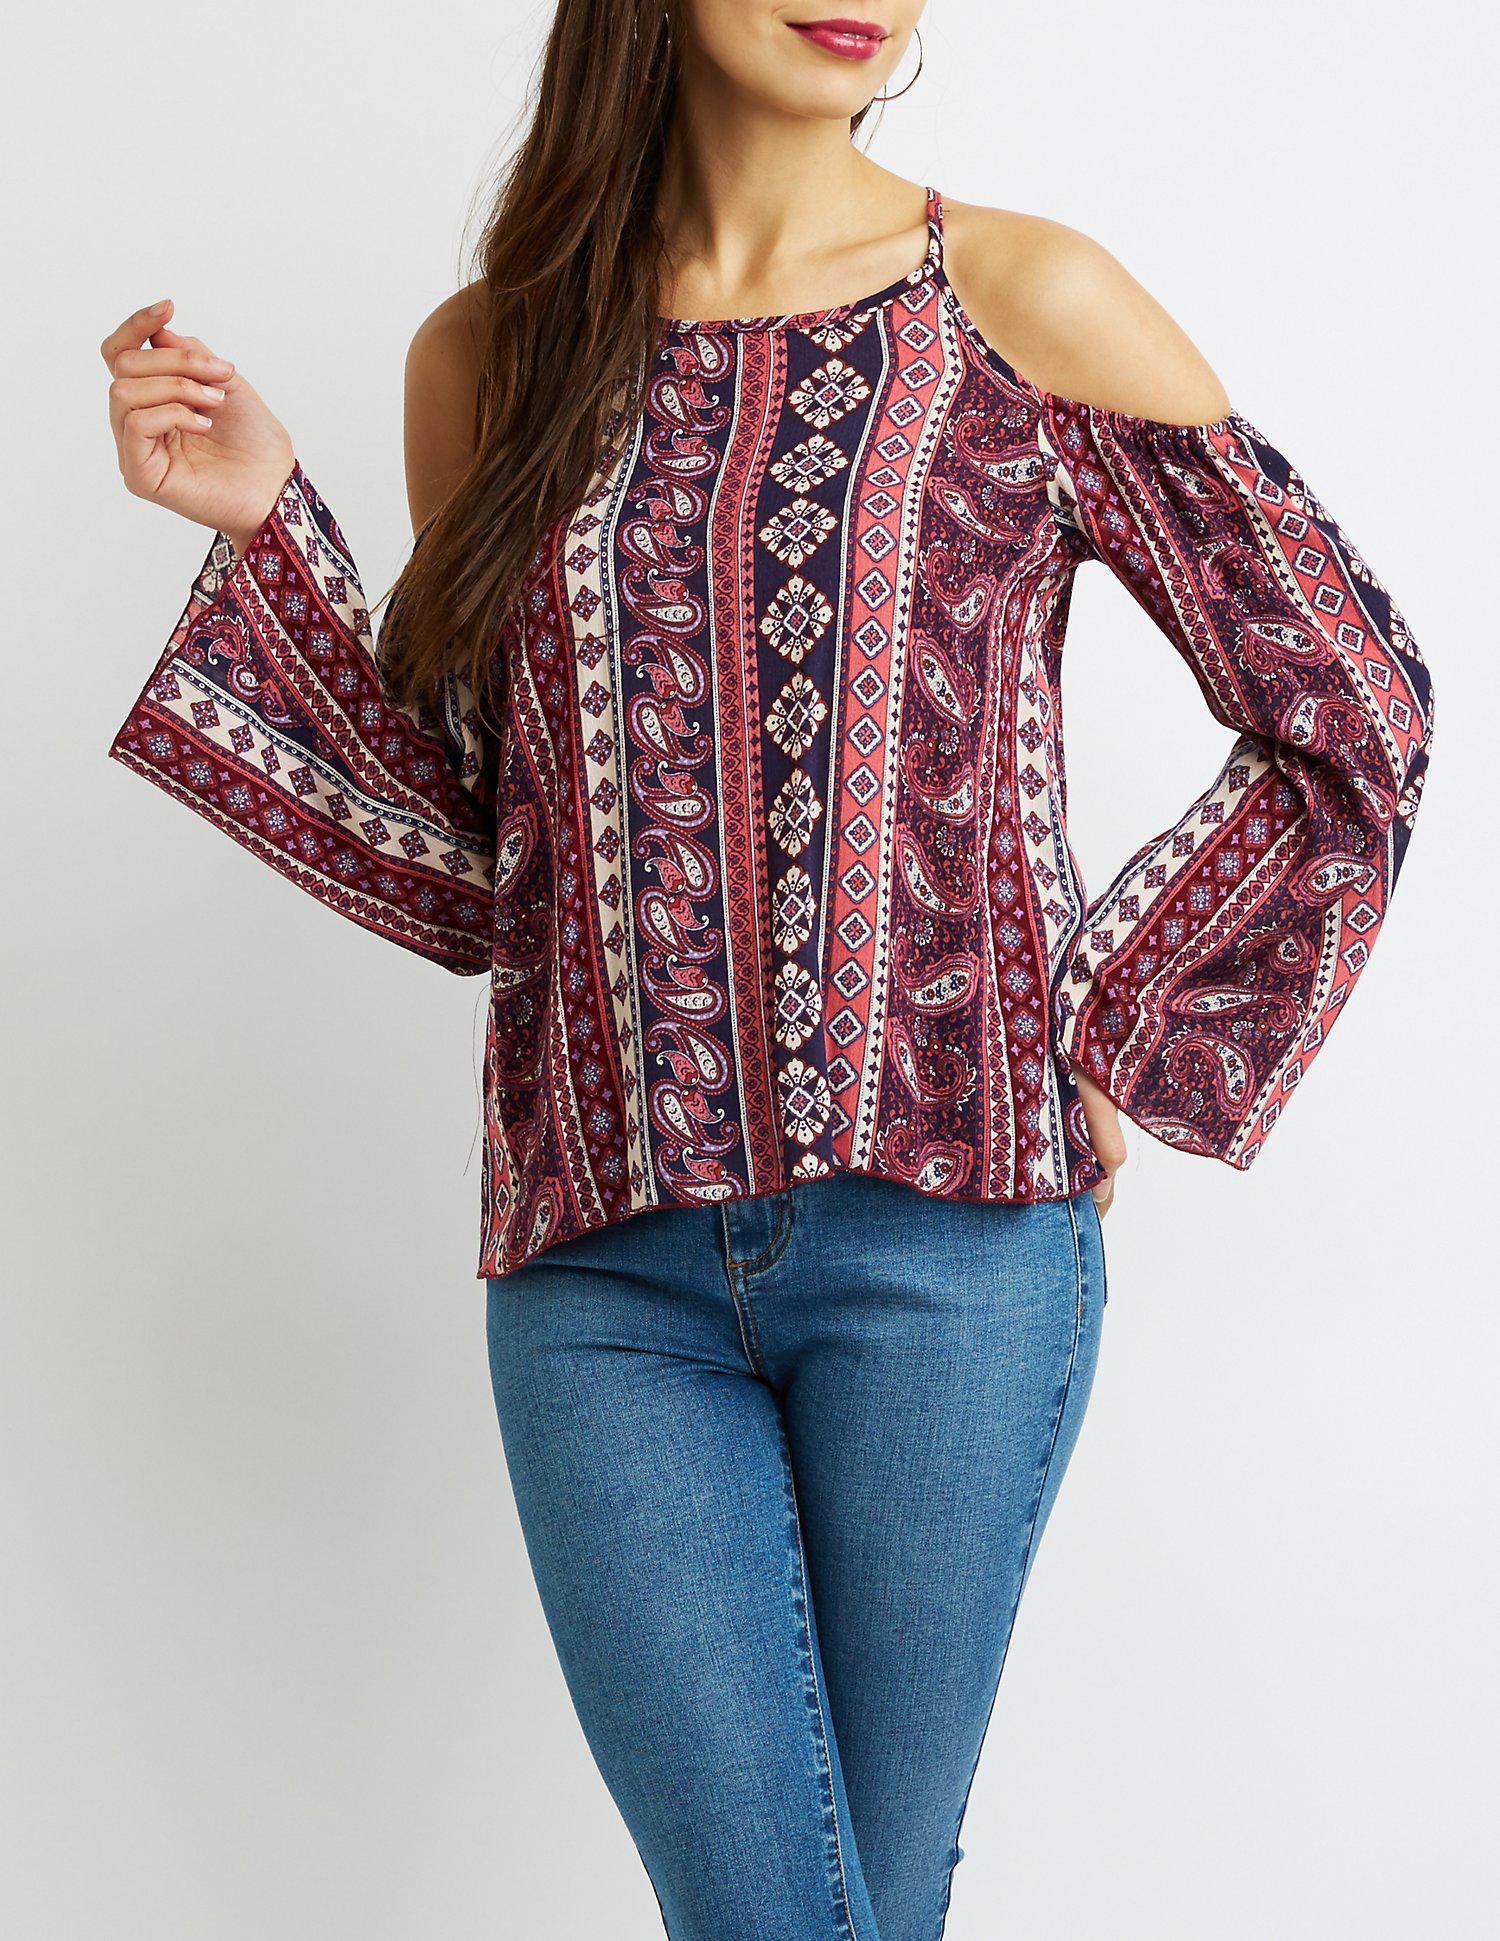 971b6295b82 Lyst - Charlotte Russe Paisley Cold-shoulder Top in Red